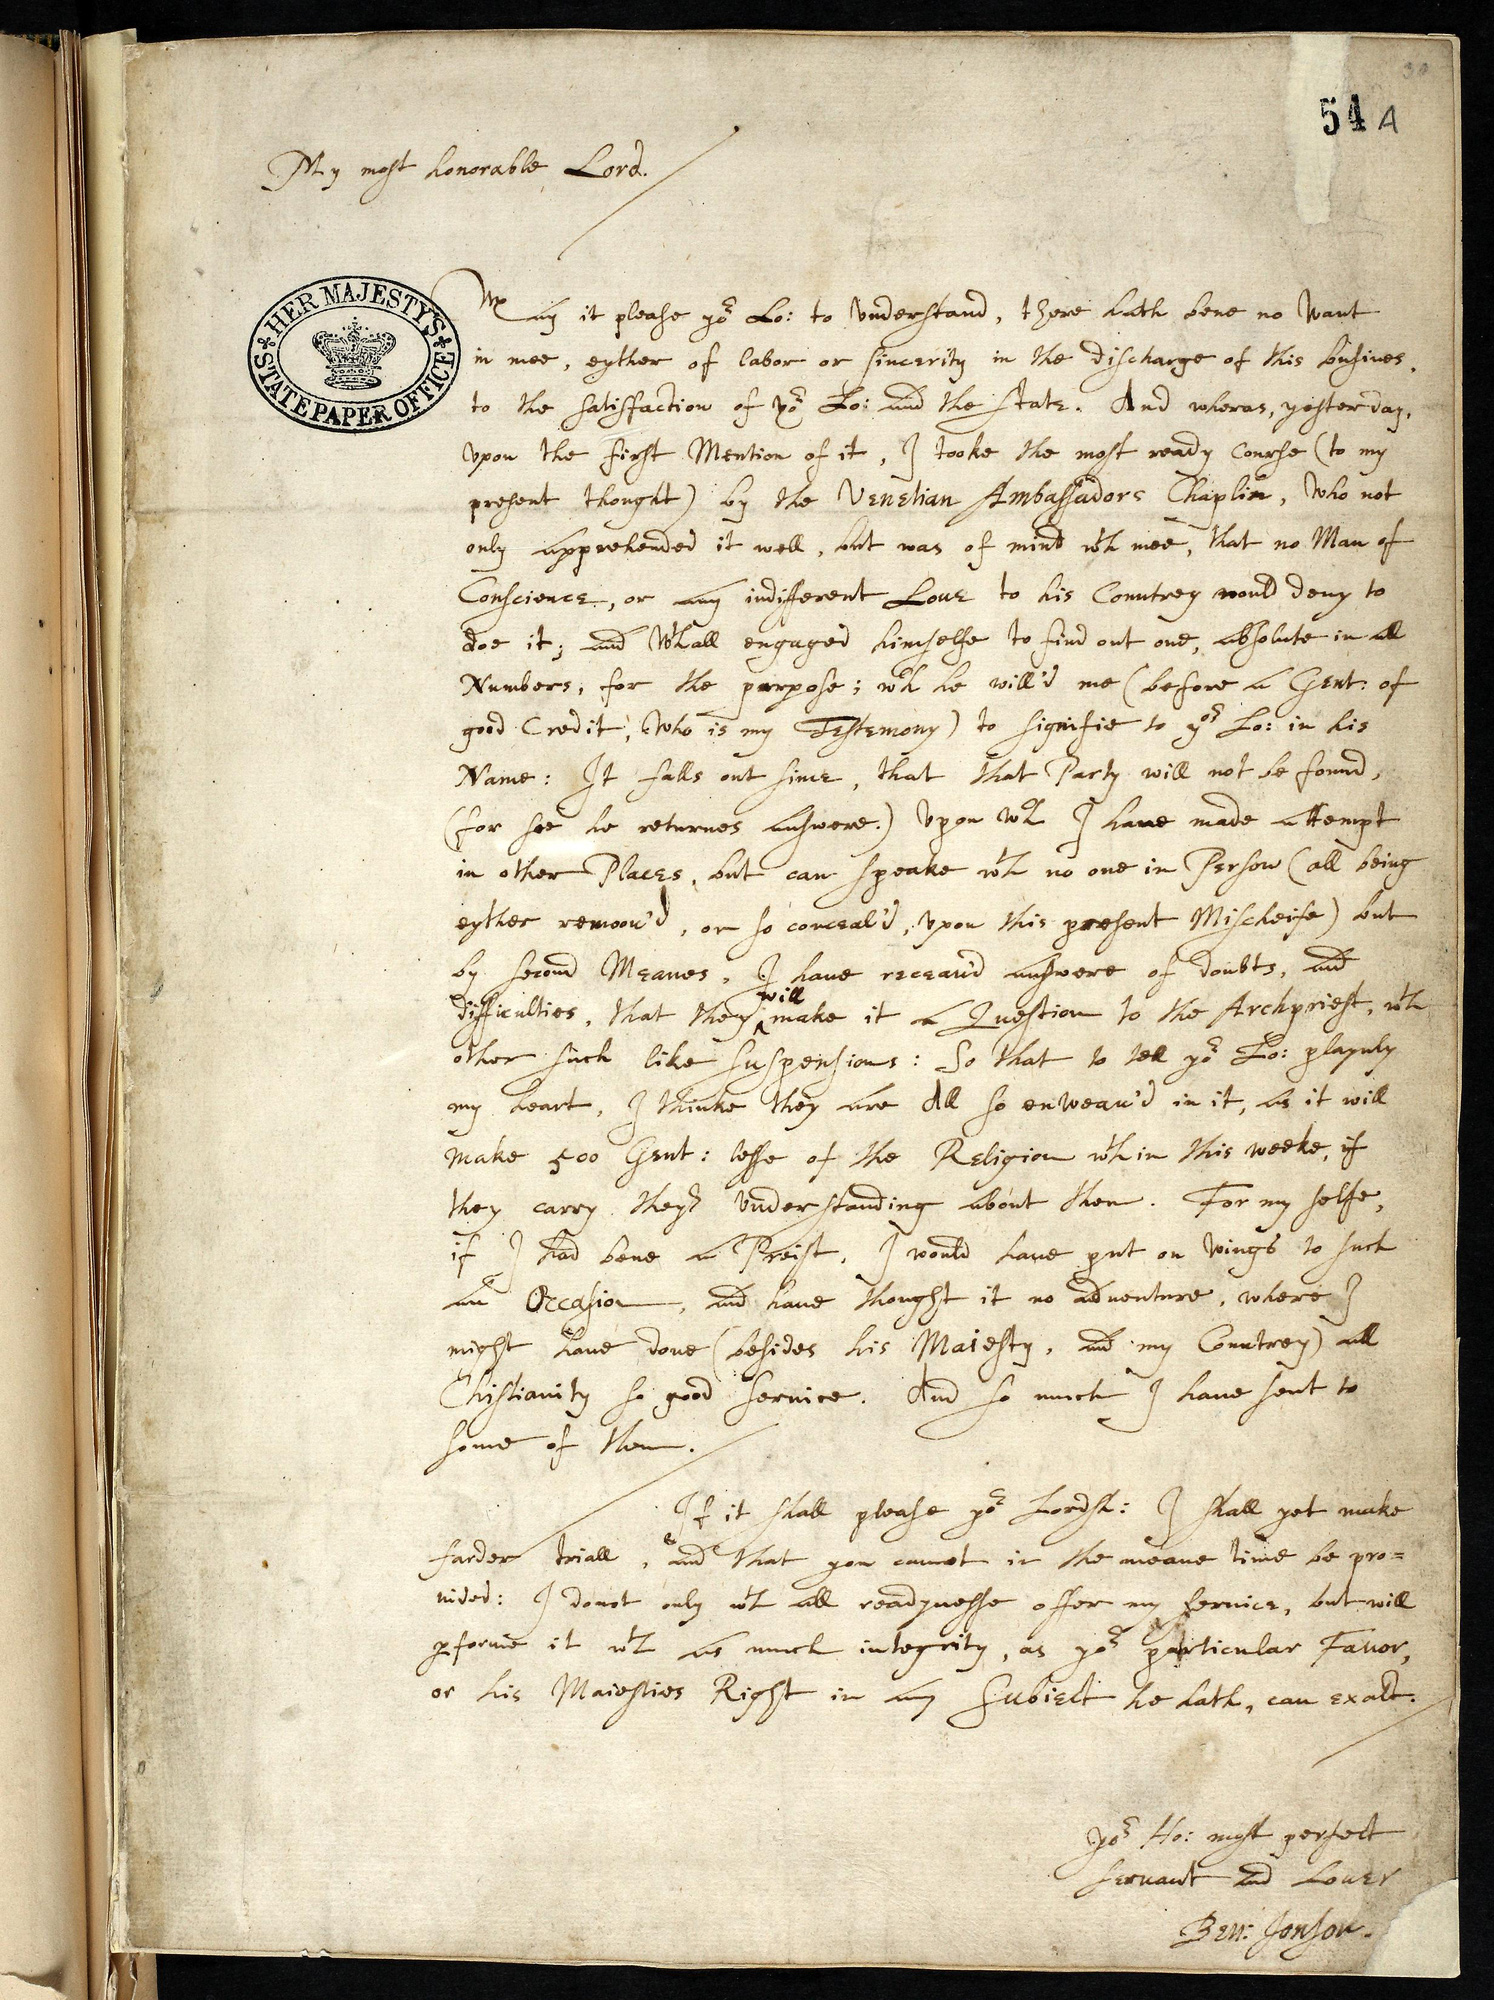 Autograph Letter by Ben Jonson Concerning The Gunpowder Plot